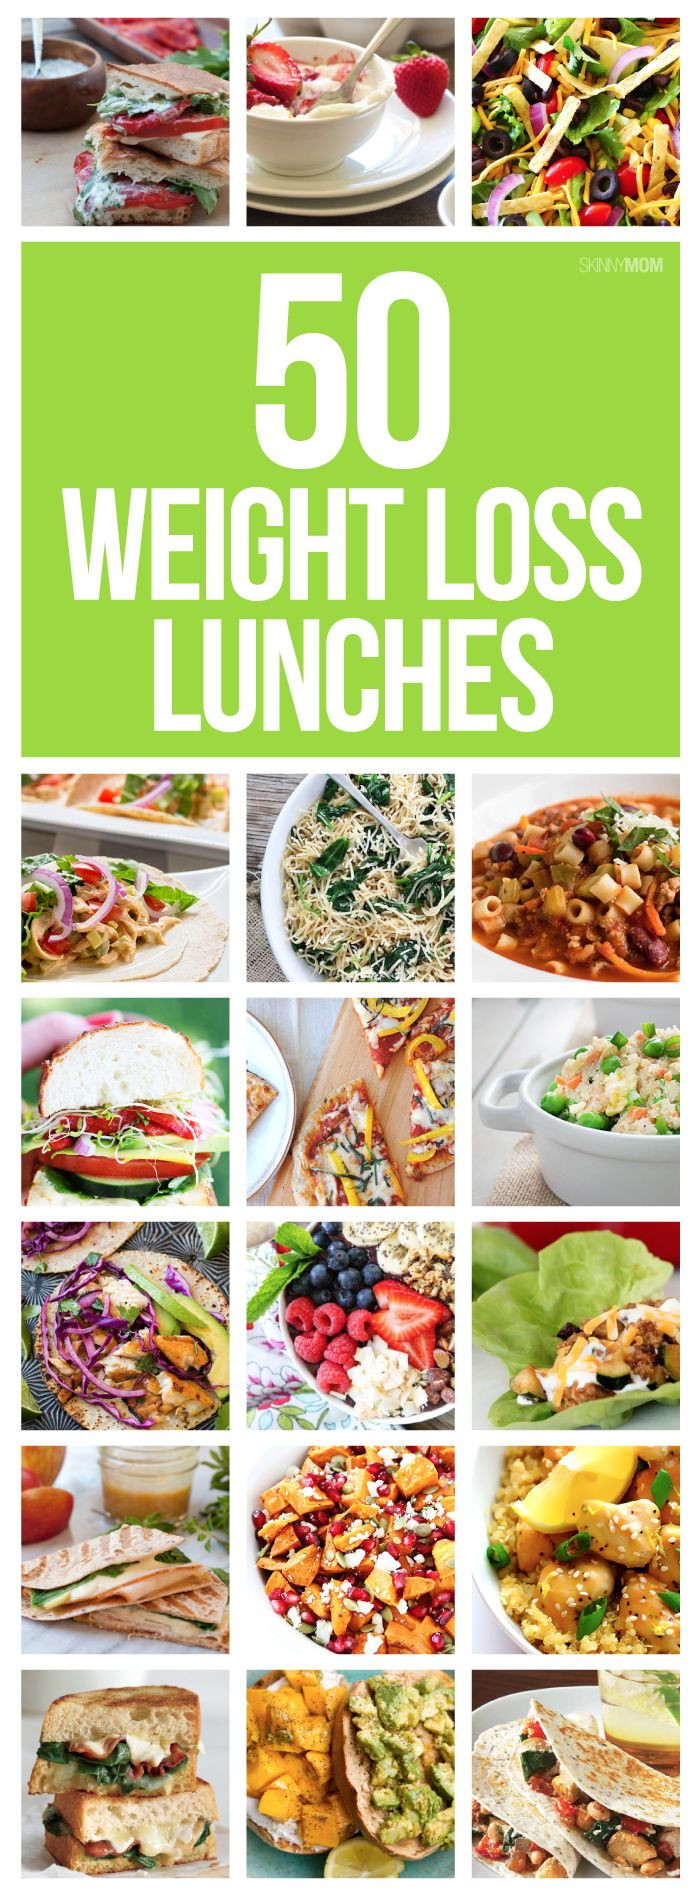 Healthy Lunches To Lose Weight  Nosh on 50 Healthy Lunches That ll Help You Lose Weight